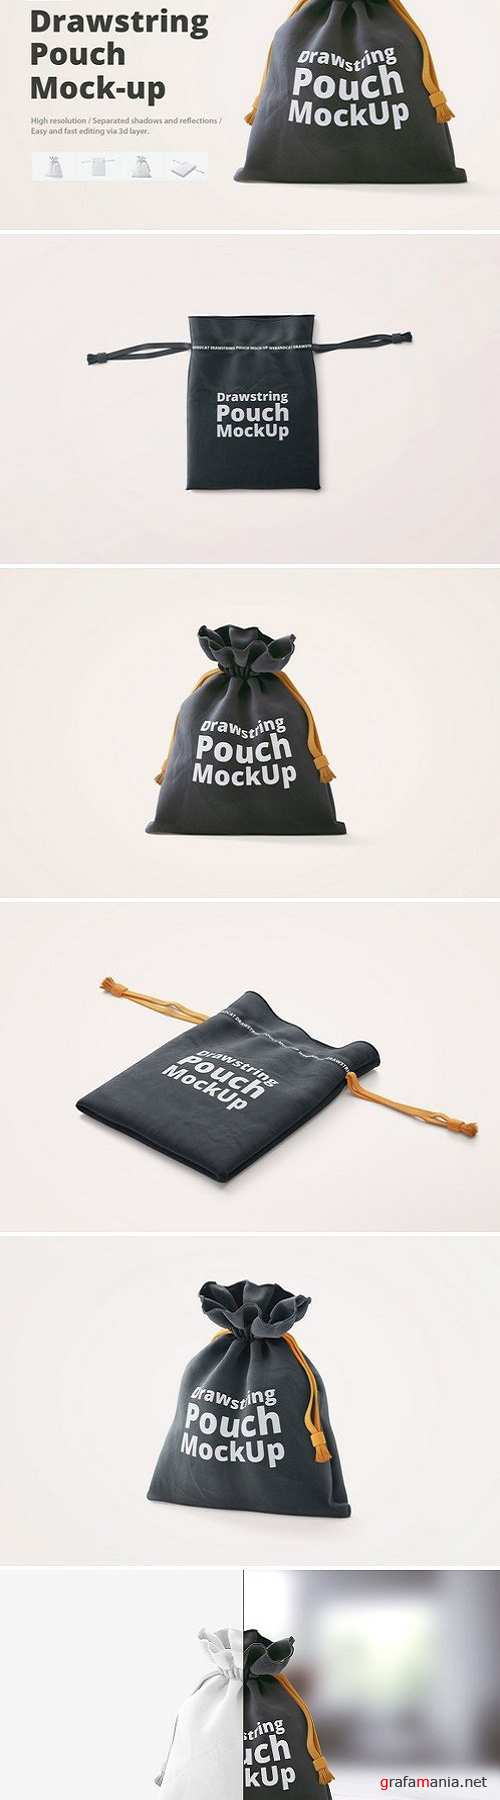 Drawstring Pouch Mock-Up 2429756